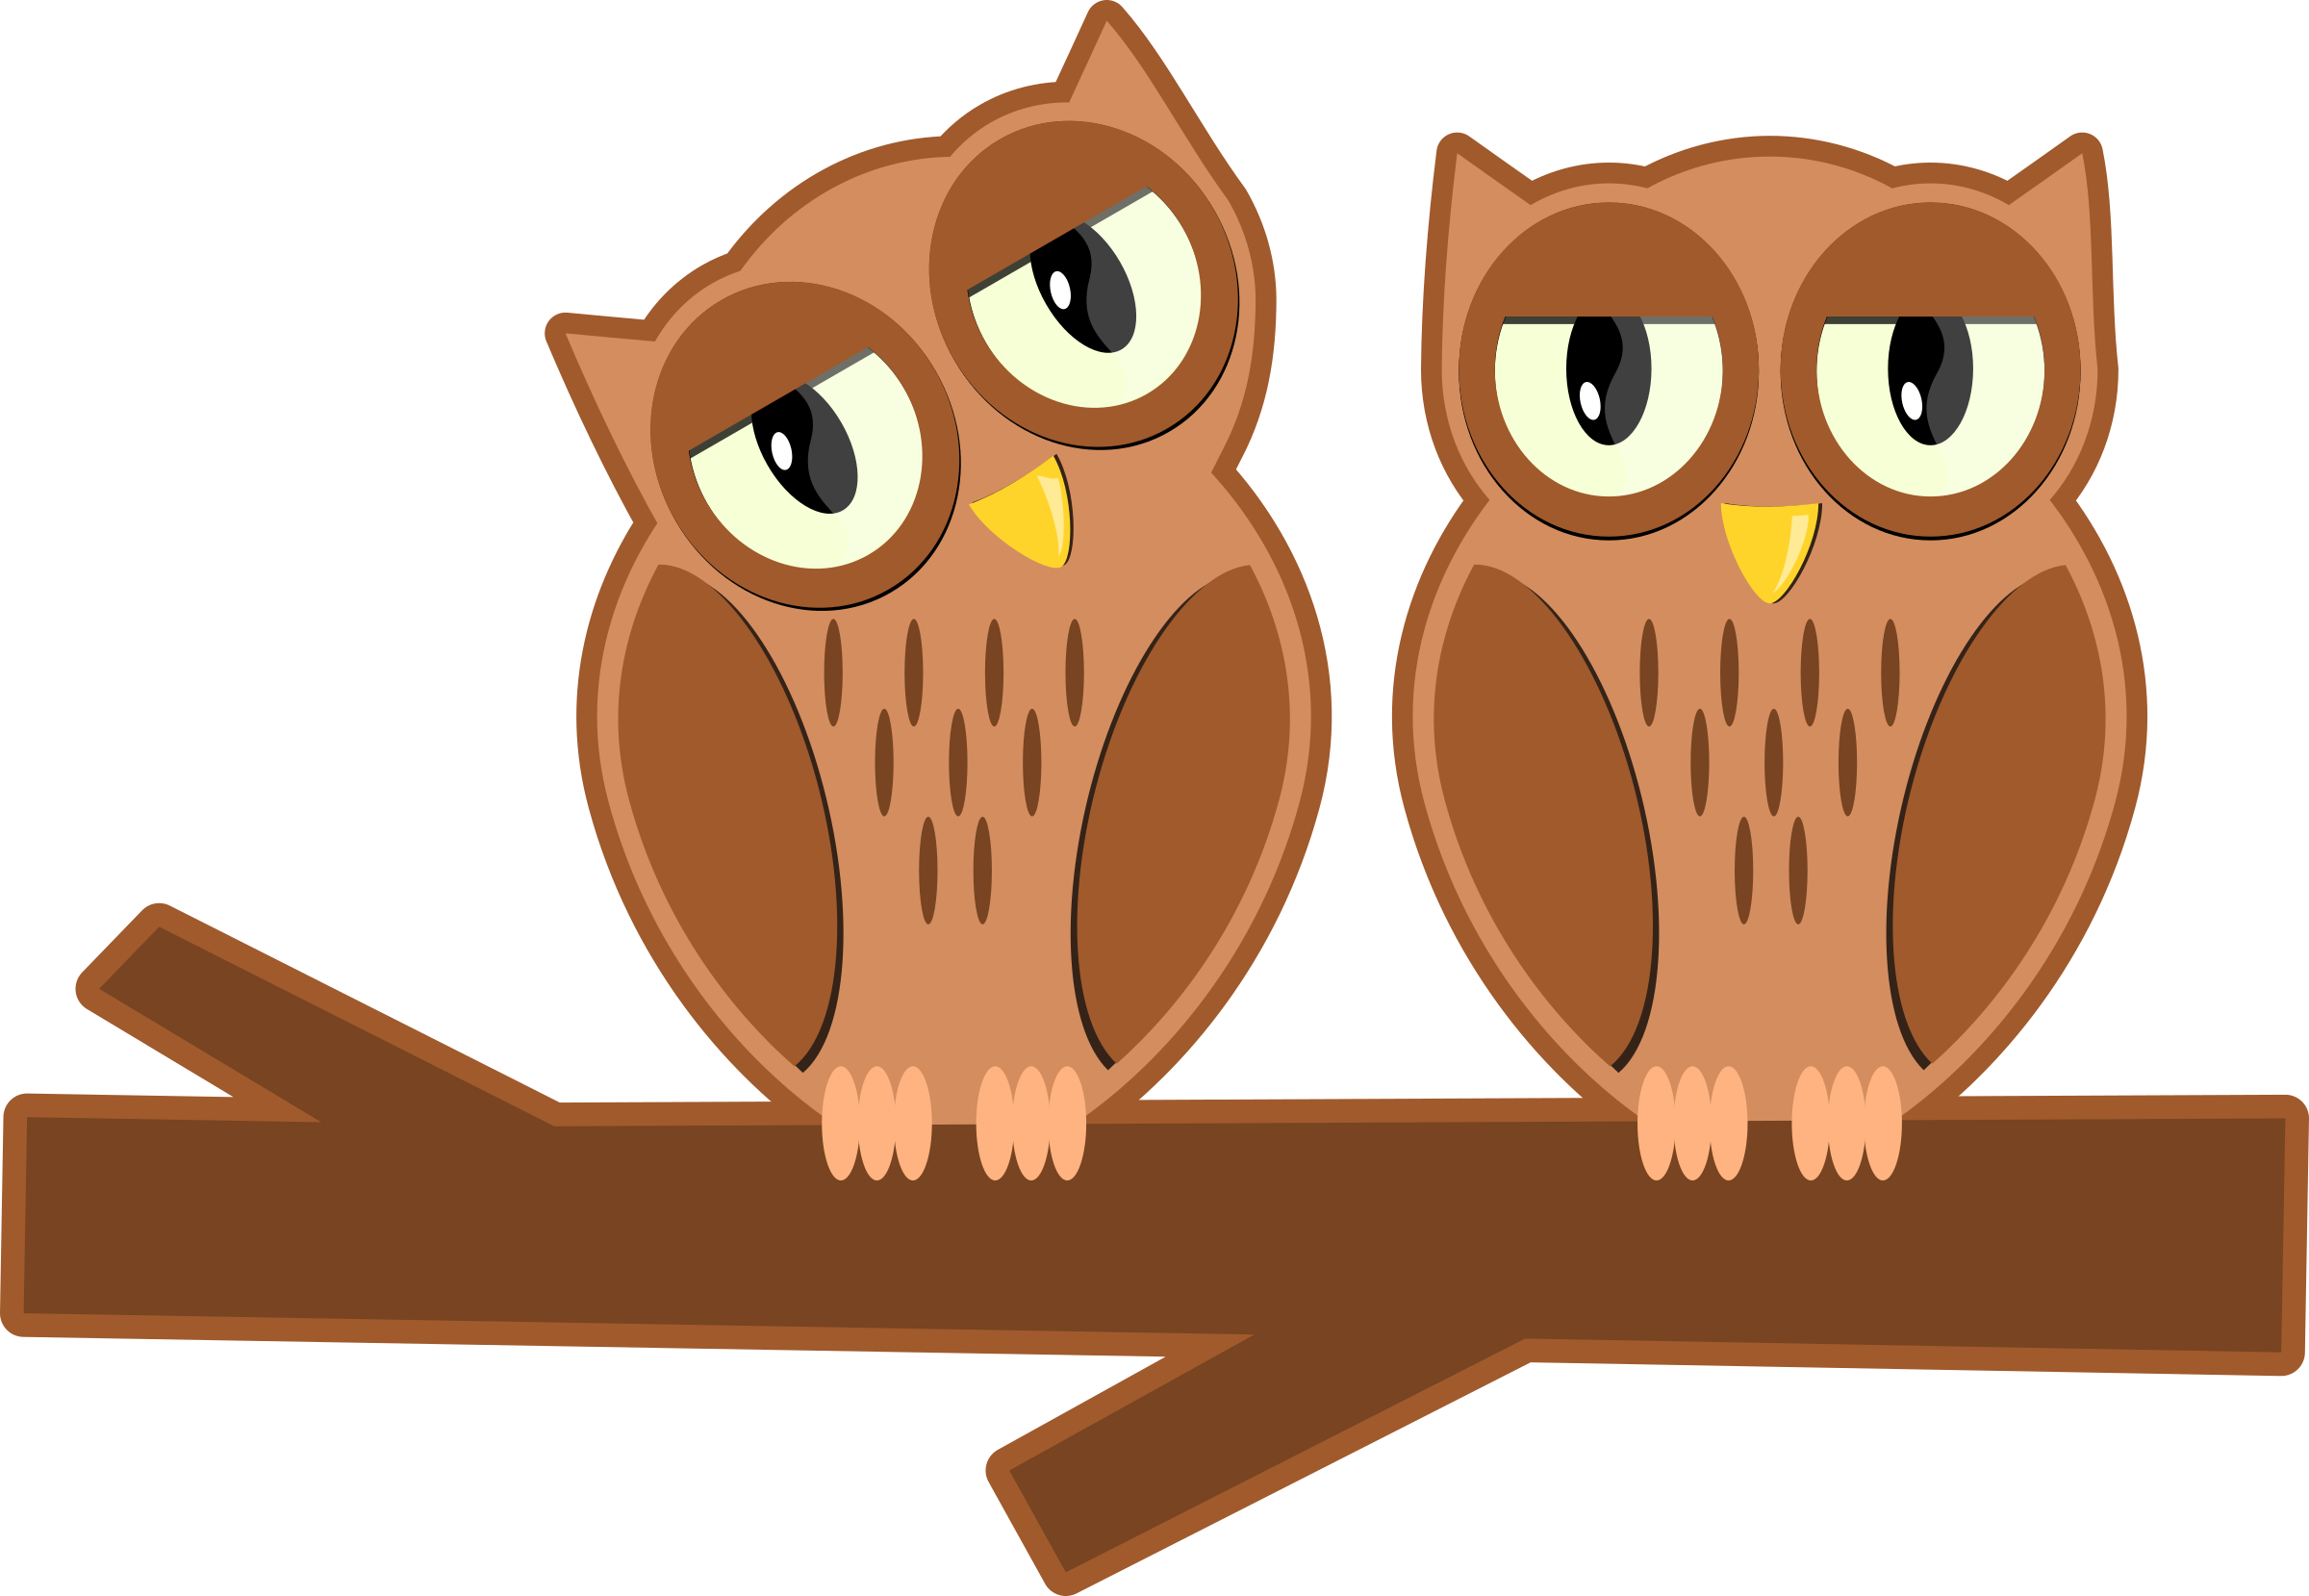 Owls on a branch by klsgfx